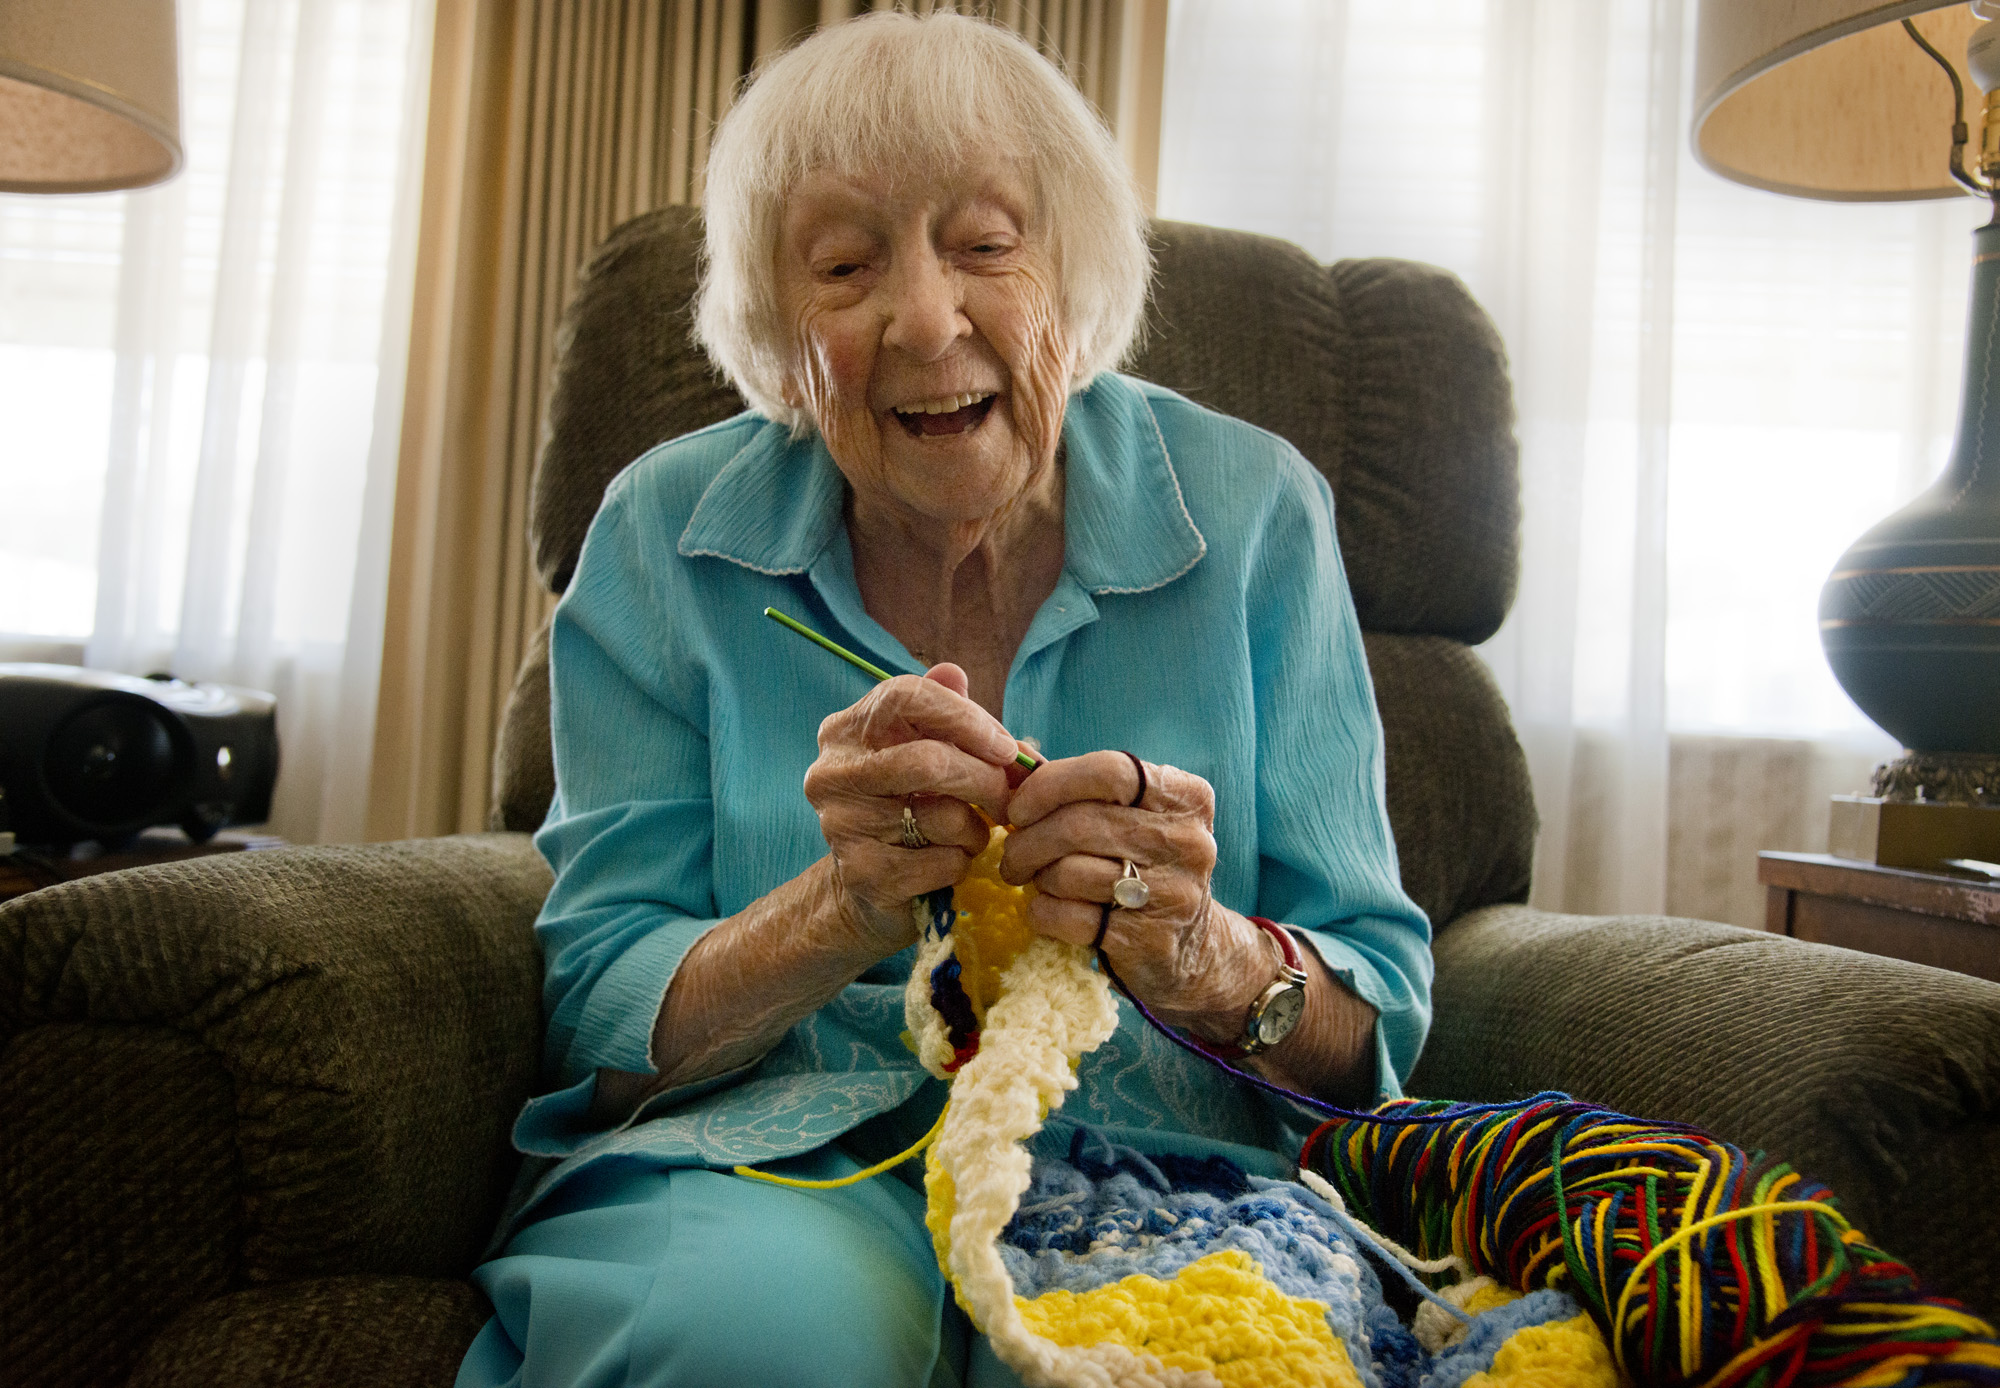 Old Lady Knitting Images : Crafting activities for seniors knit sew crochet and